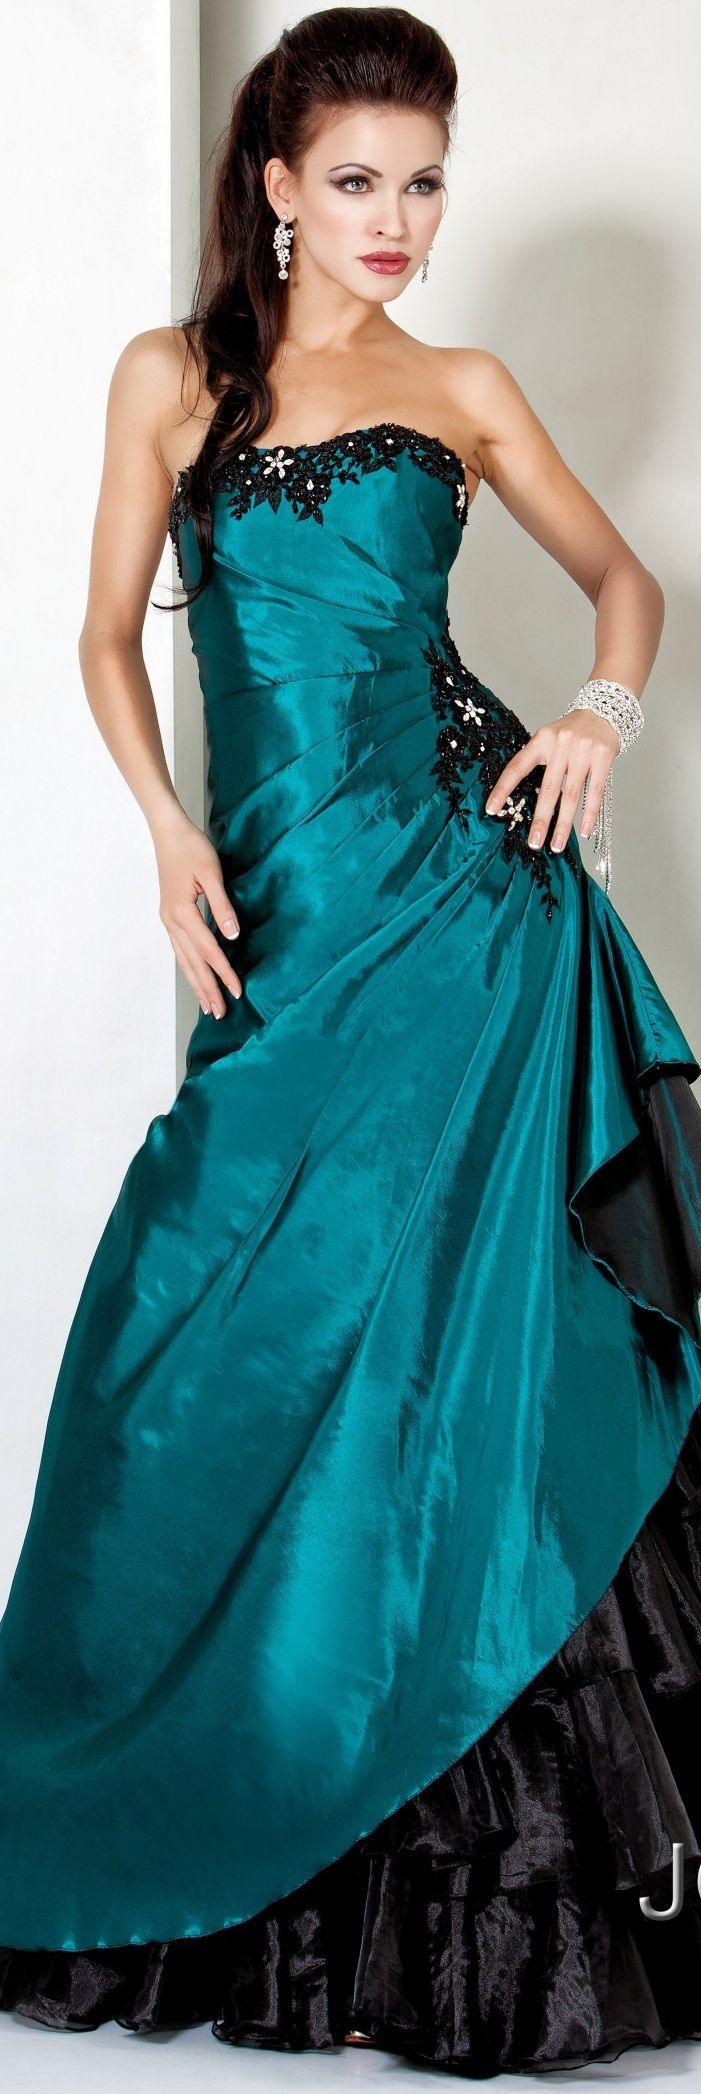 Jovani Prom couture 2013 I love the color and how it\'s gathered at ...